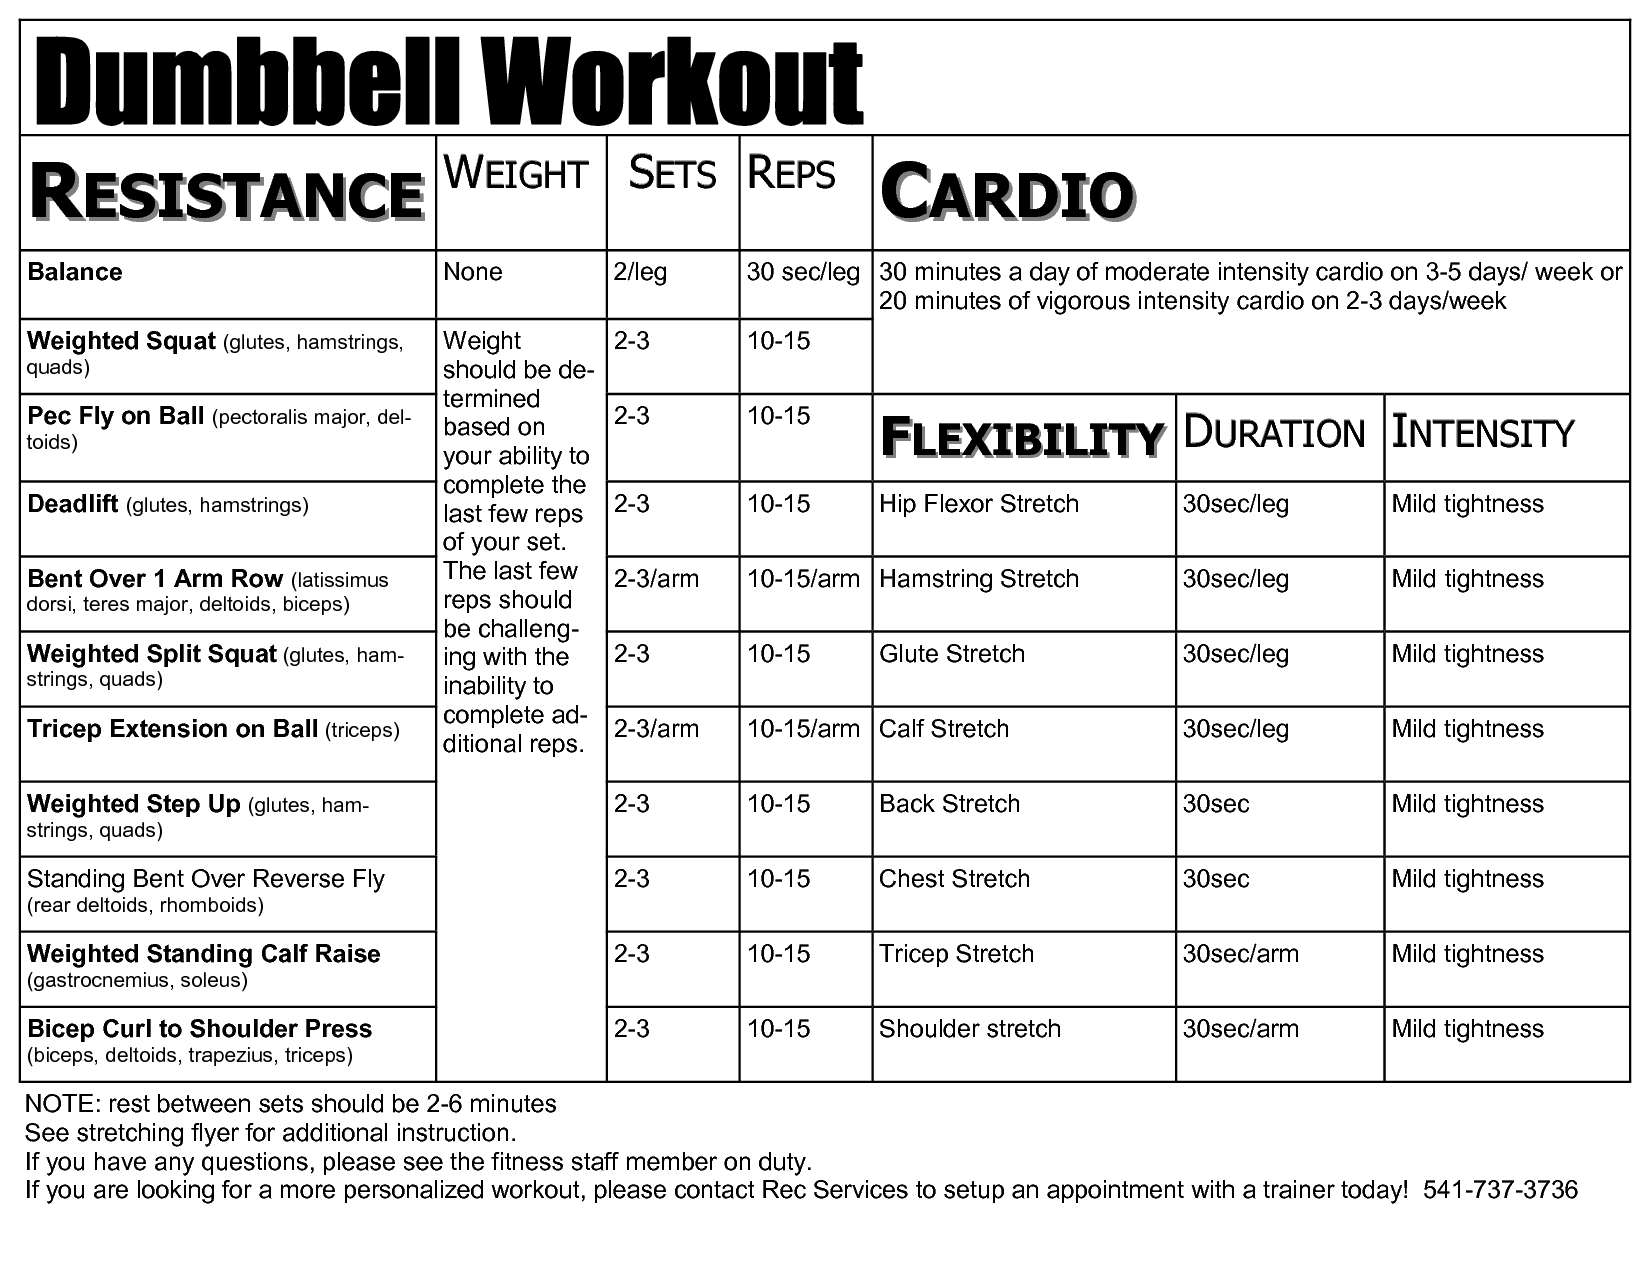 mens health workout routine pdf